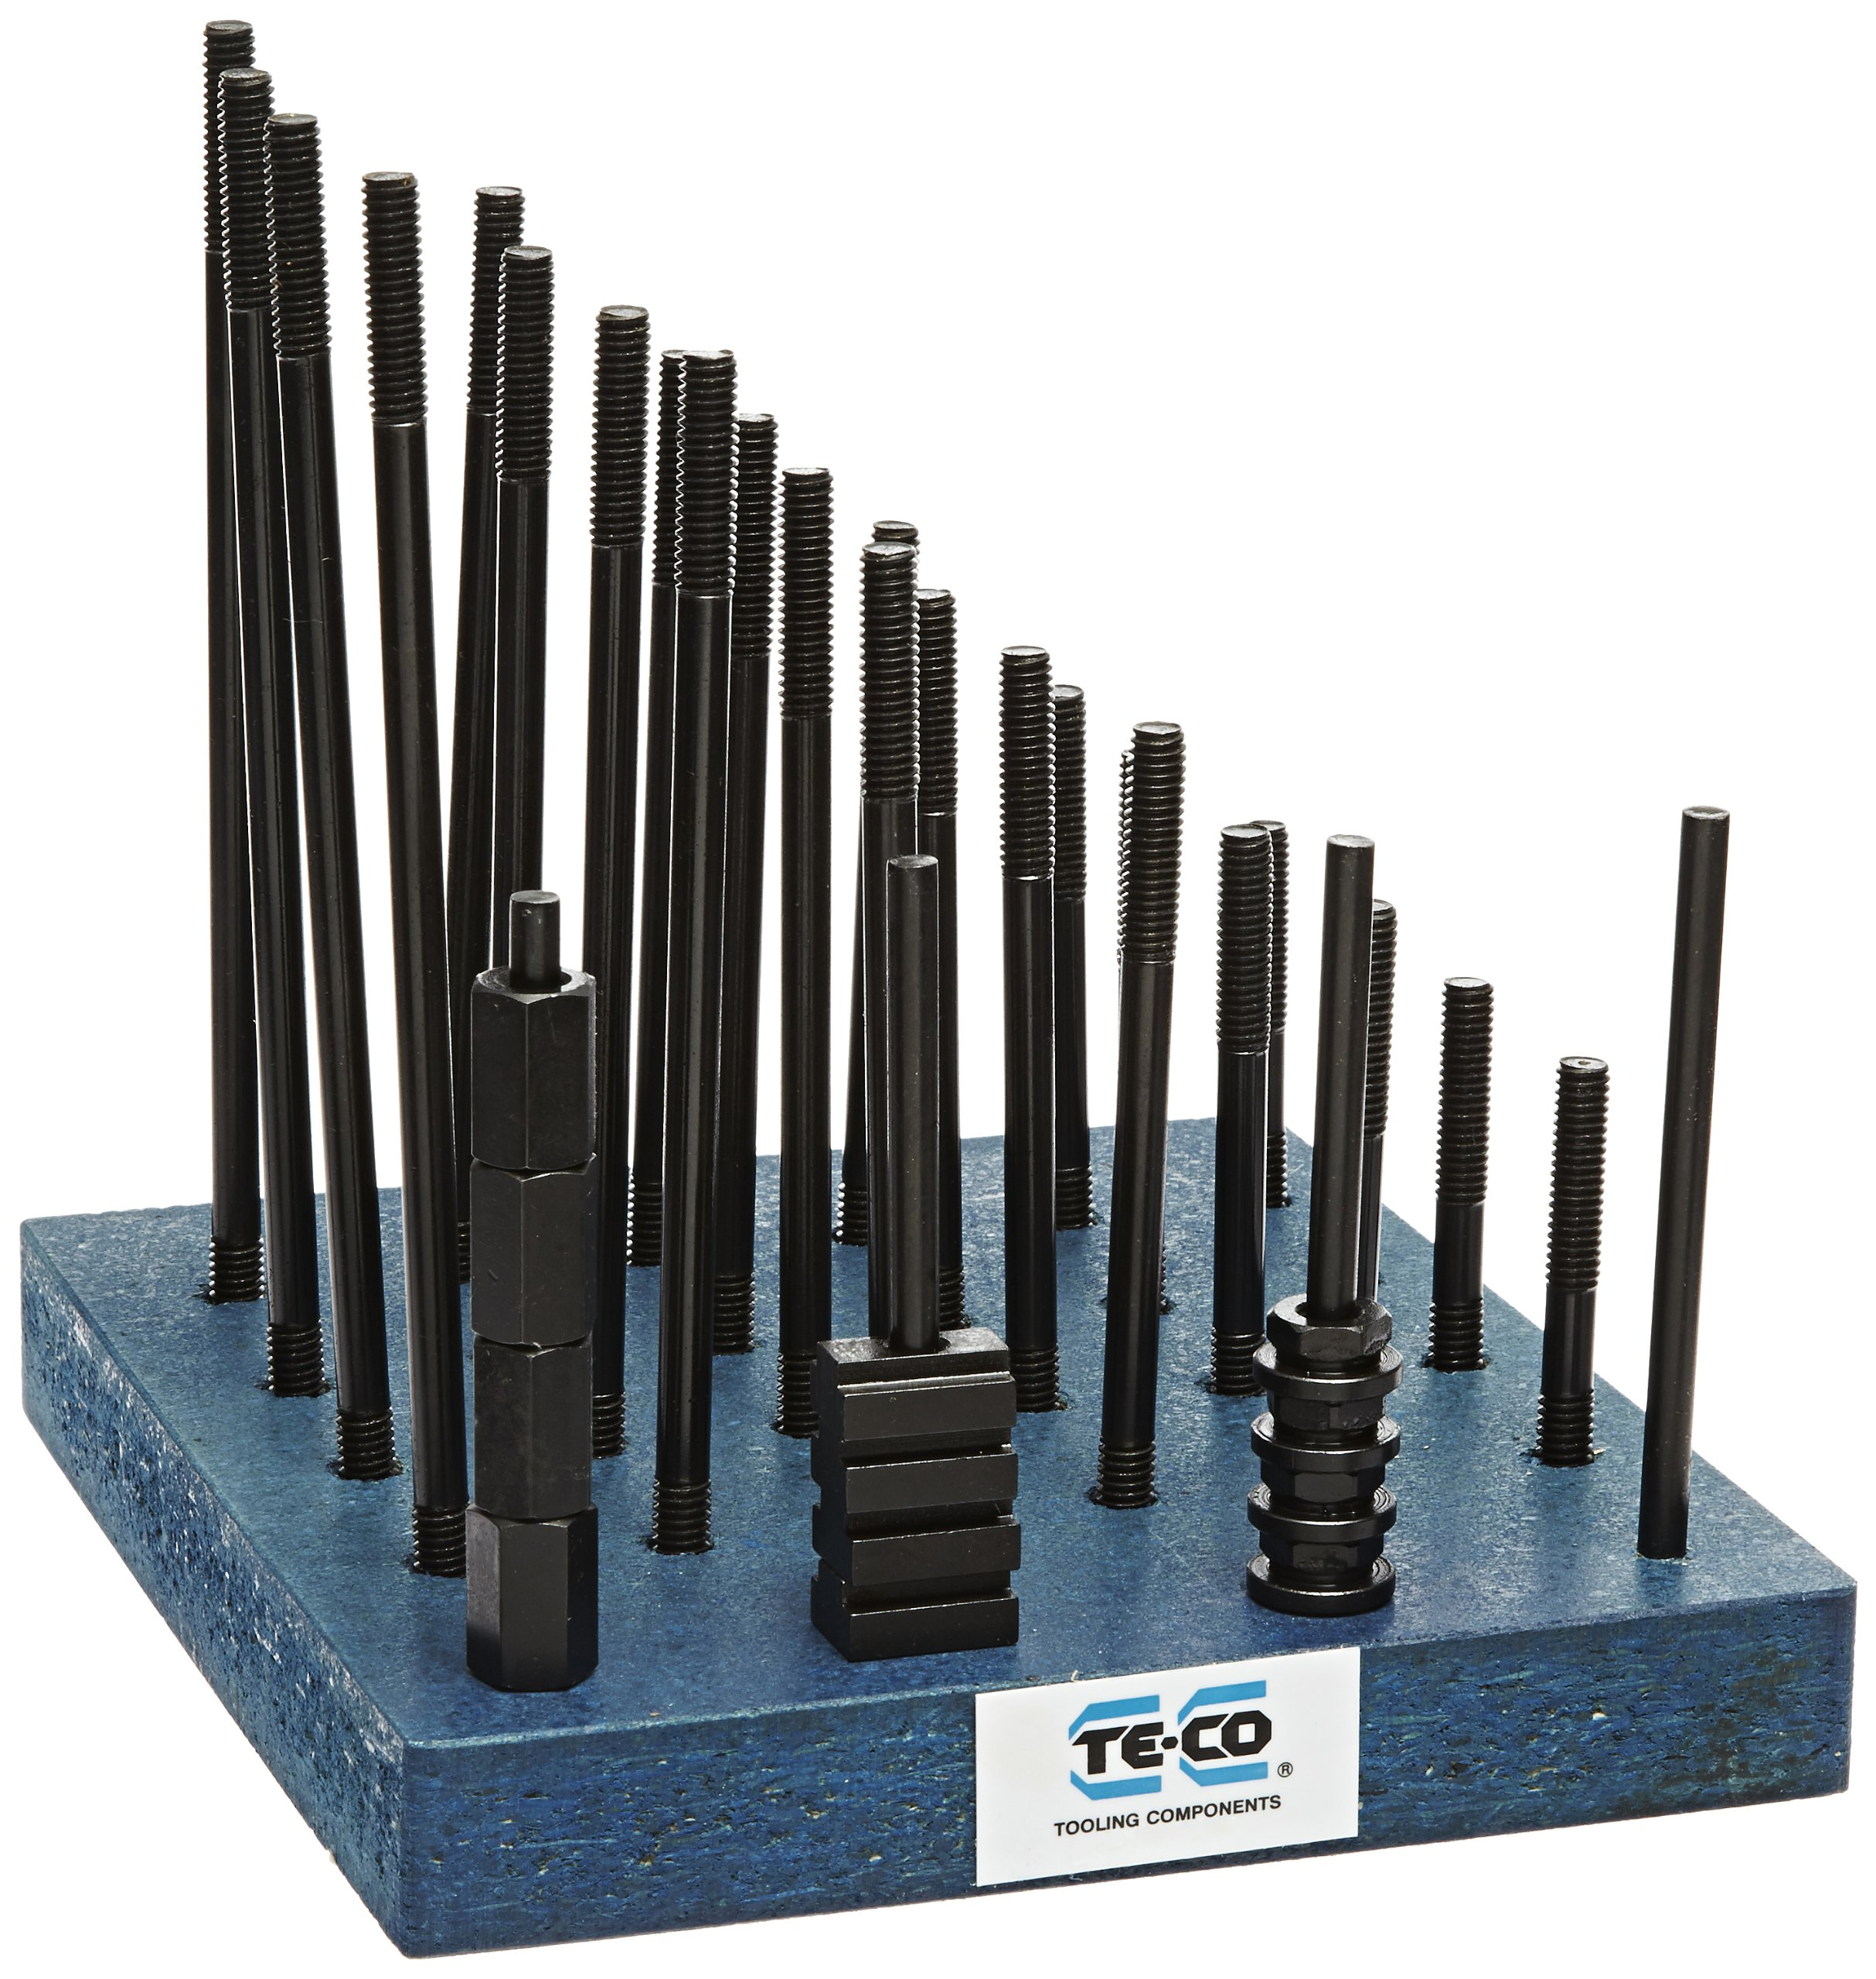 Te-Co 20601 38 Piece T-Nut and Stud Kit, 5/16''-18 Stud x 3/8'' Table T-Slot by Small Parts